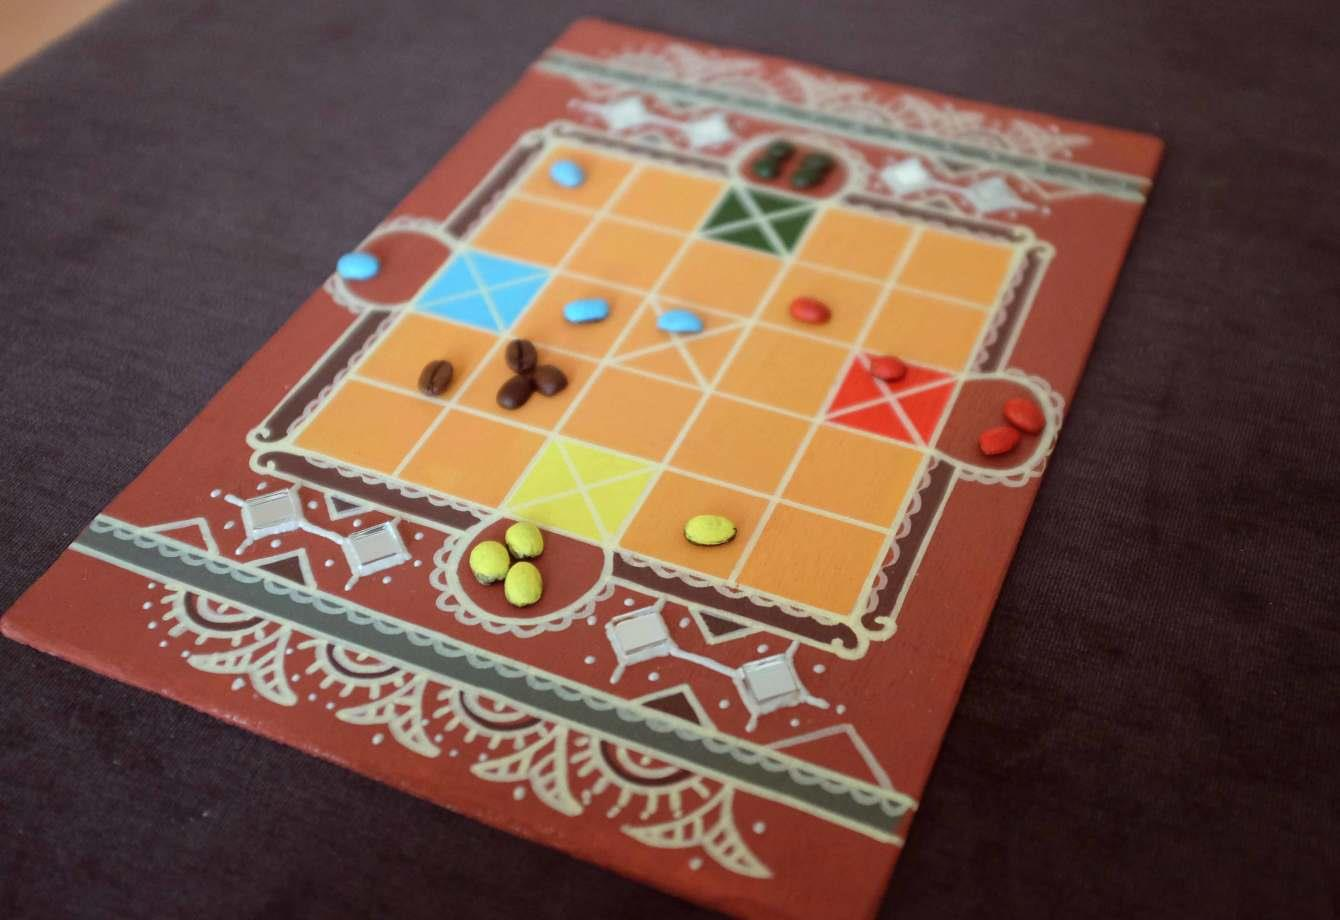 Chausar To Gutte: Learn Play Way